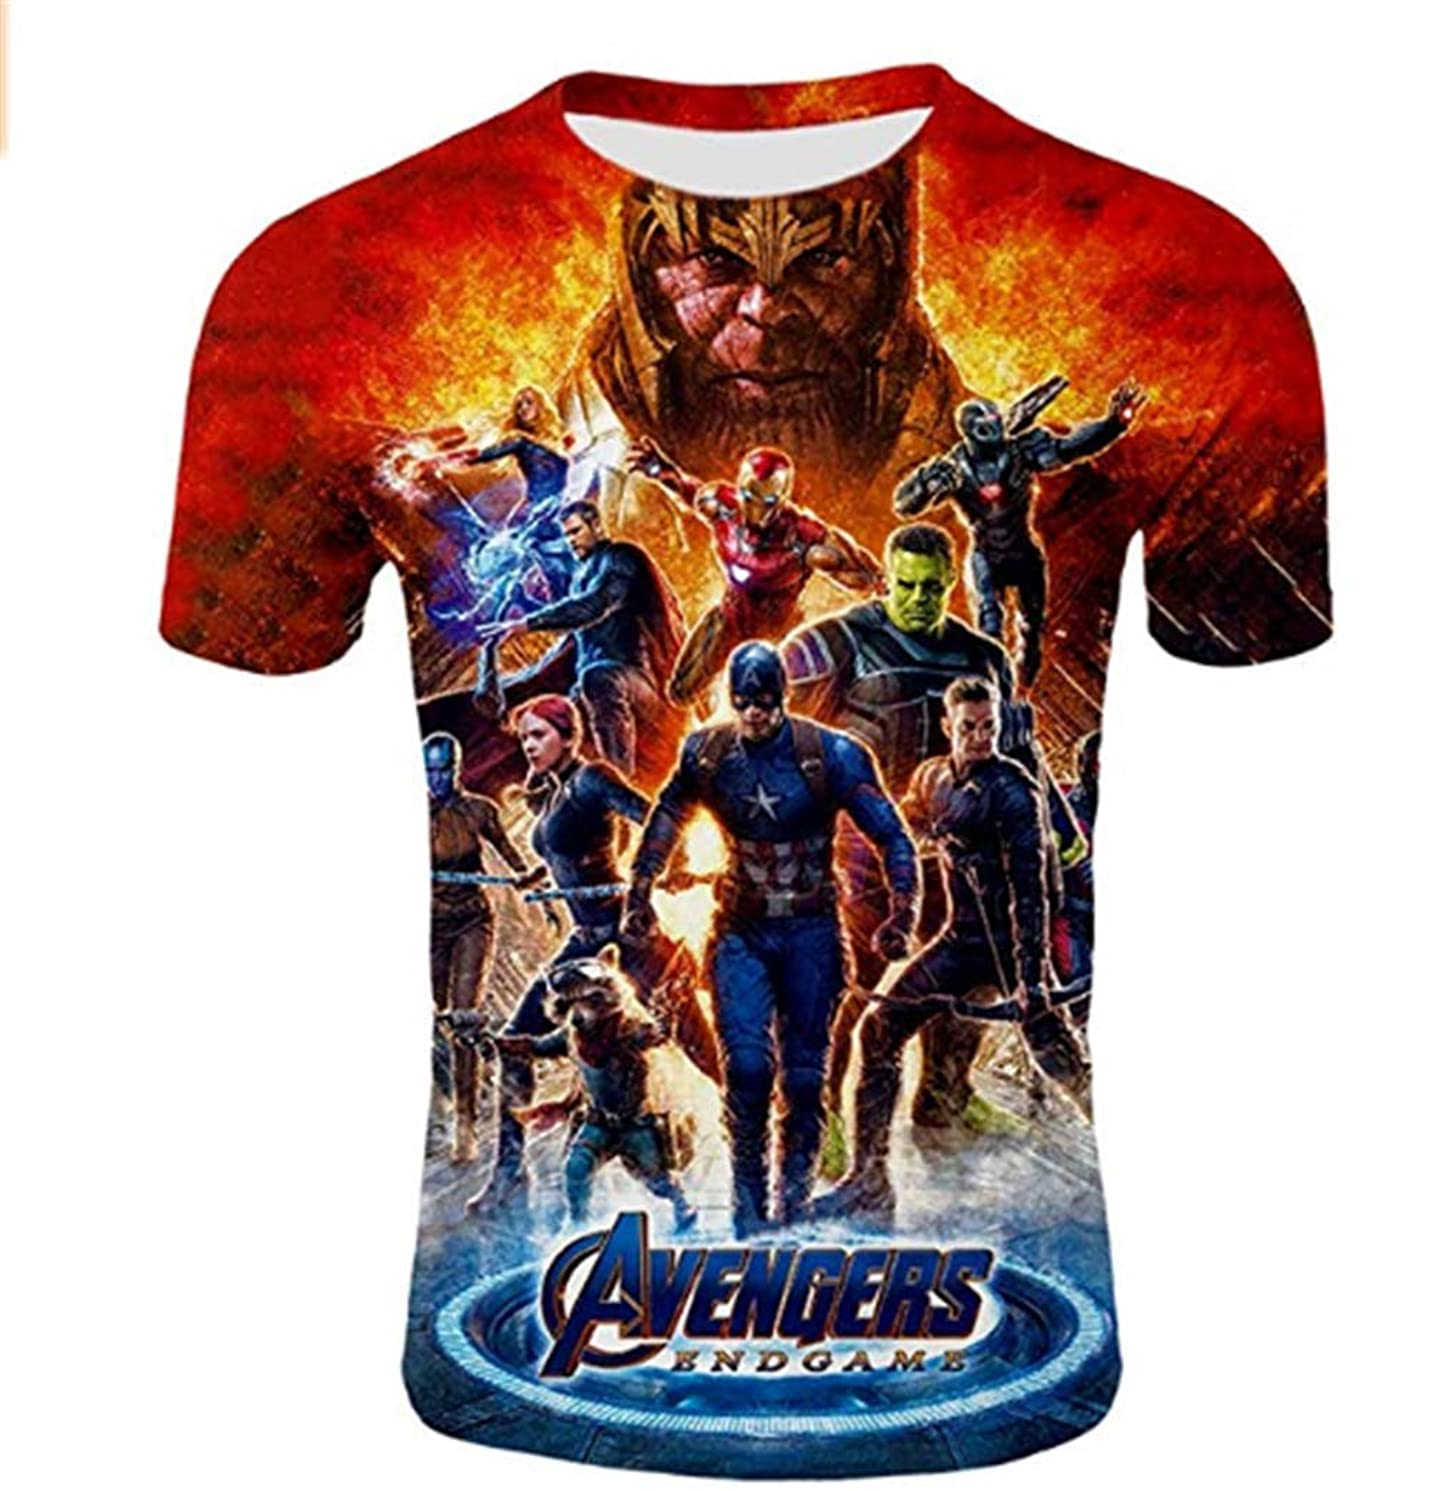 3D Avengers Endgame Shirt Sports Suit Fitness T Shirt Casual Short Sleeves Shirts for Mens and Youth